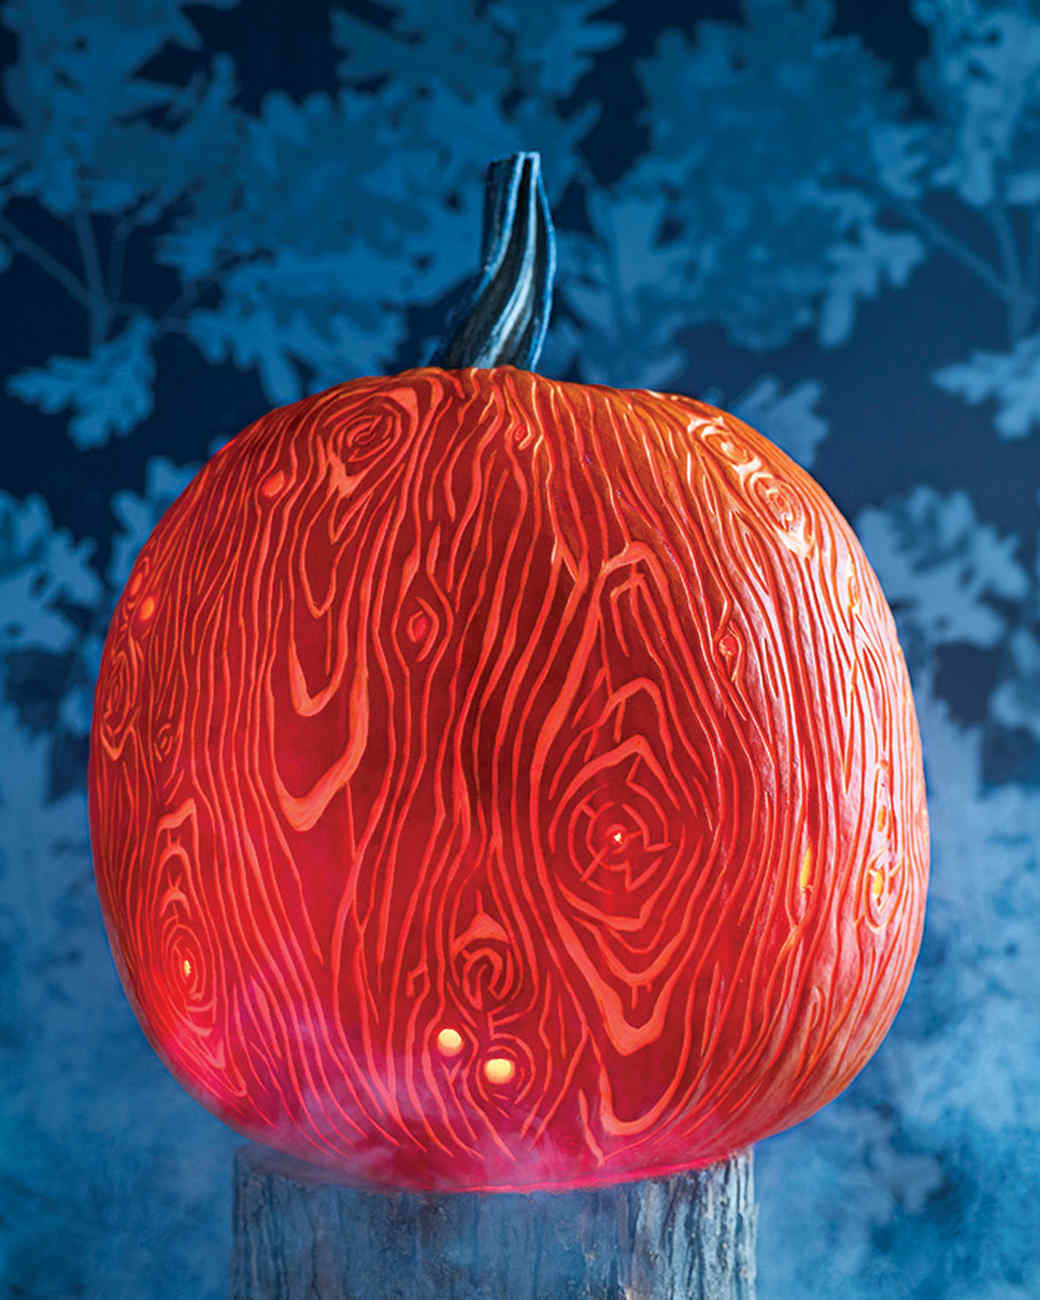 Scary Pumpkin Carving Patterns Simple Inspiration Design